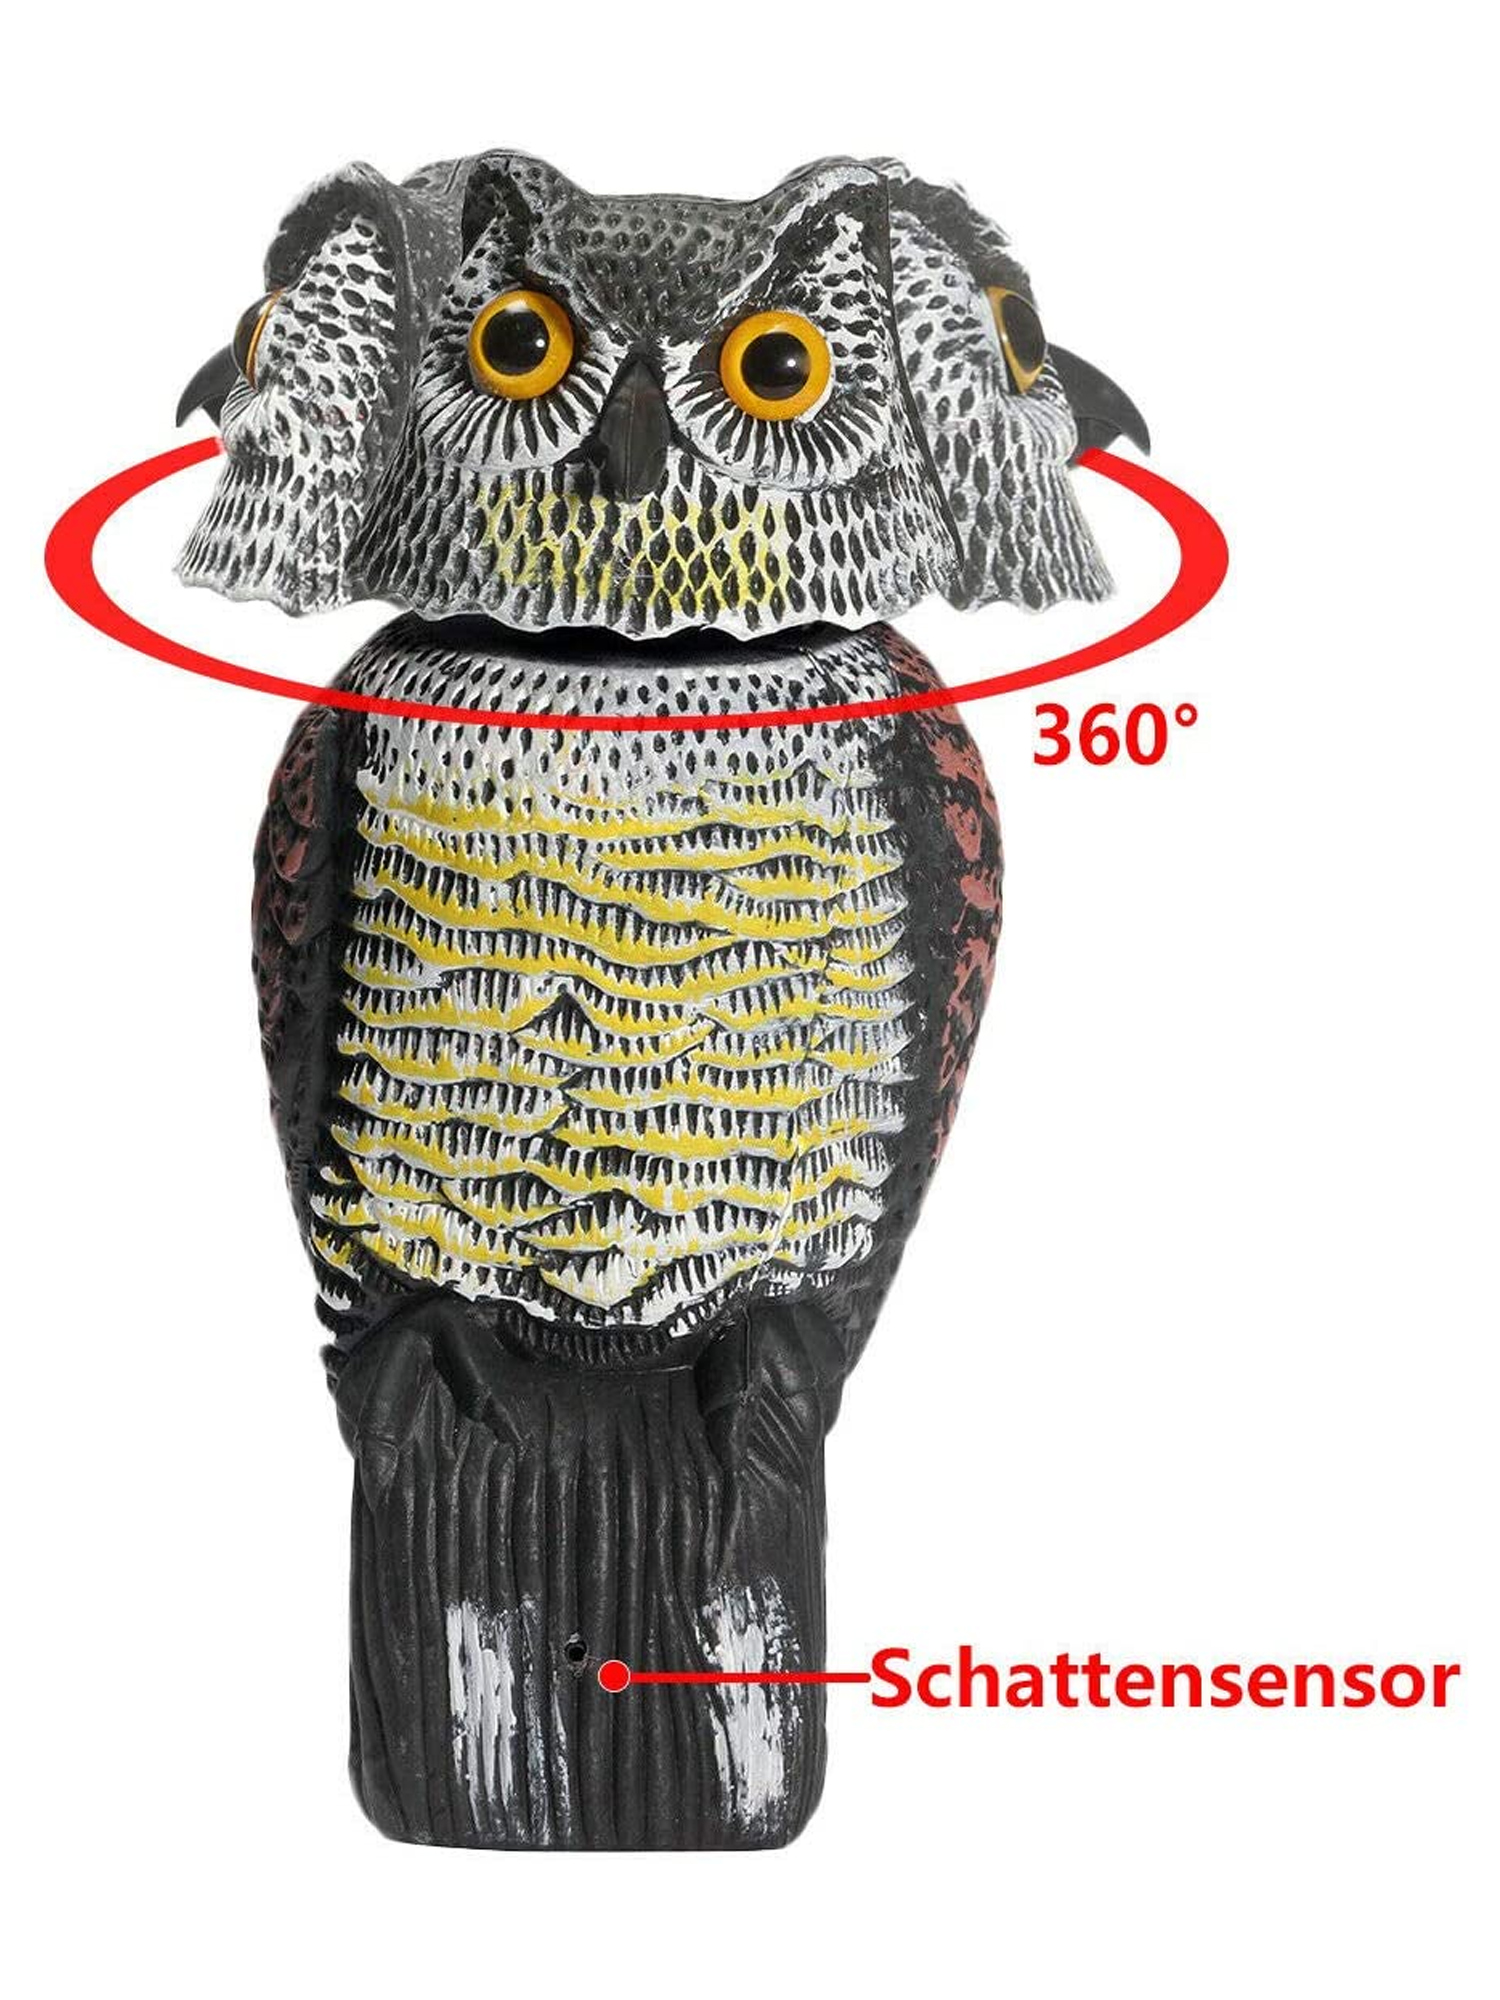 owl decoy 360 rotate head to scare birds scarecrow owl decoy statue realistic scary sounds shadow fake owl outdoor pest bird deterrent for patio